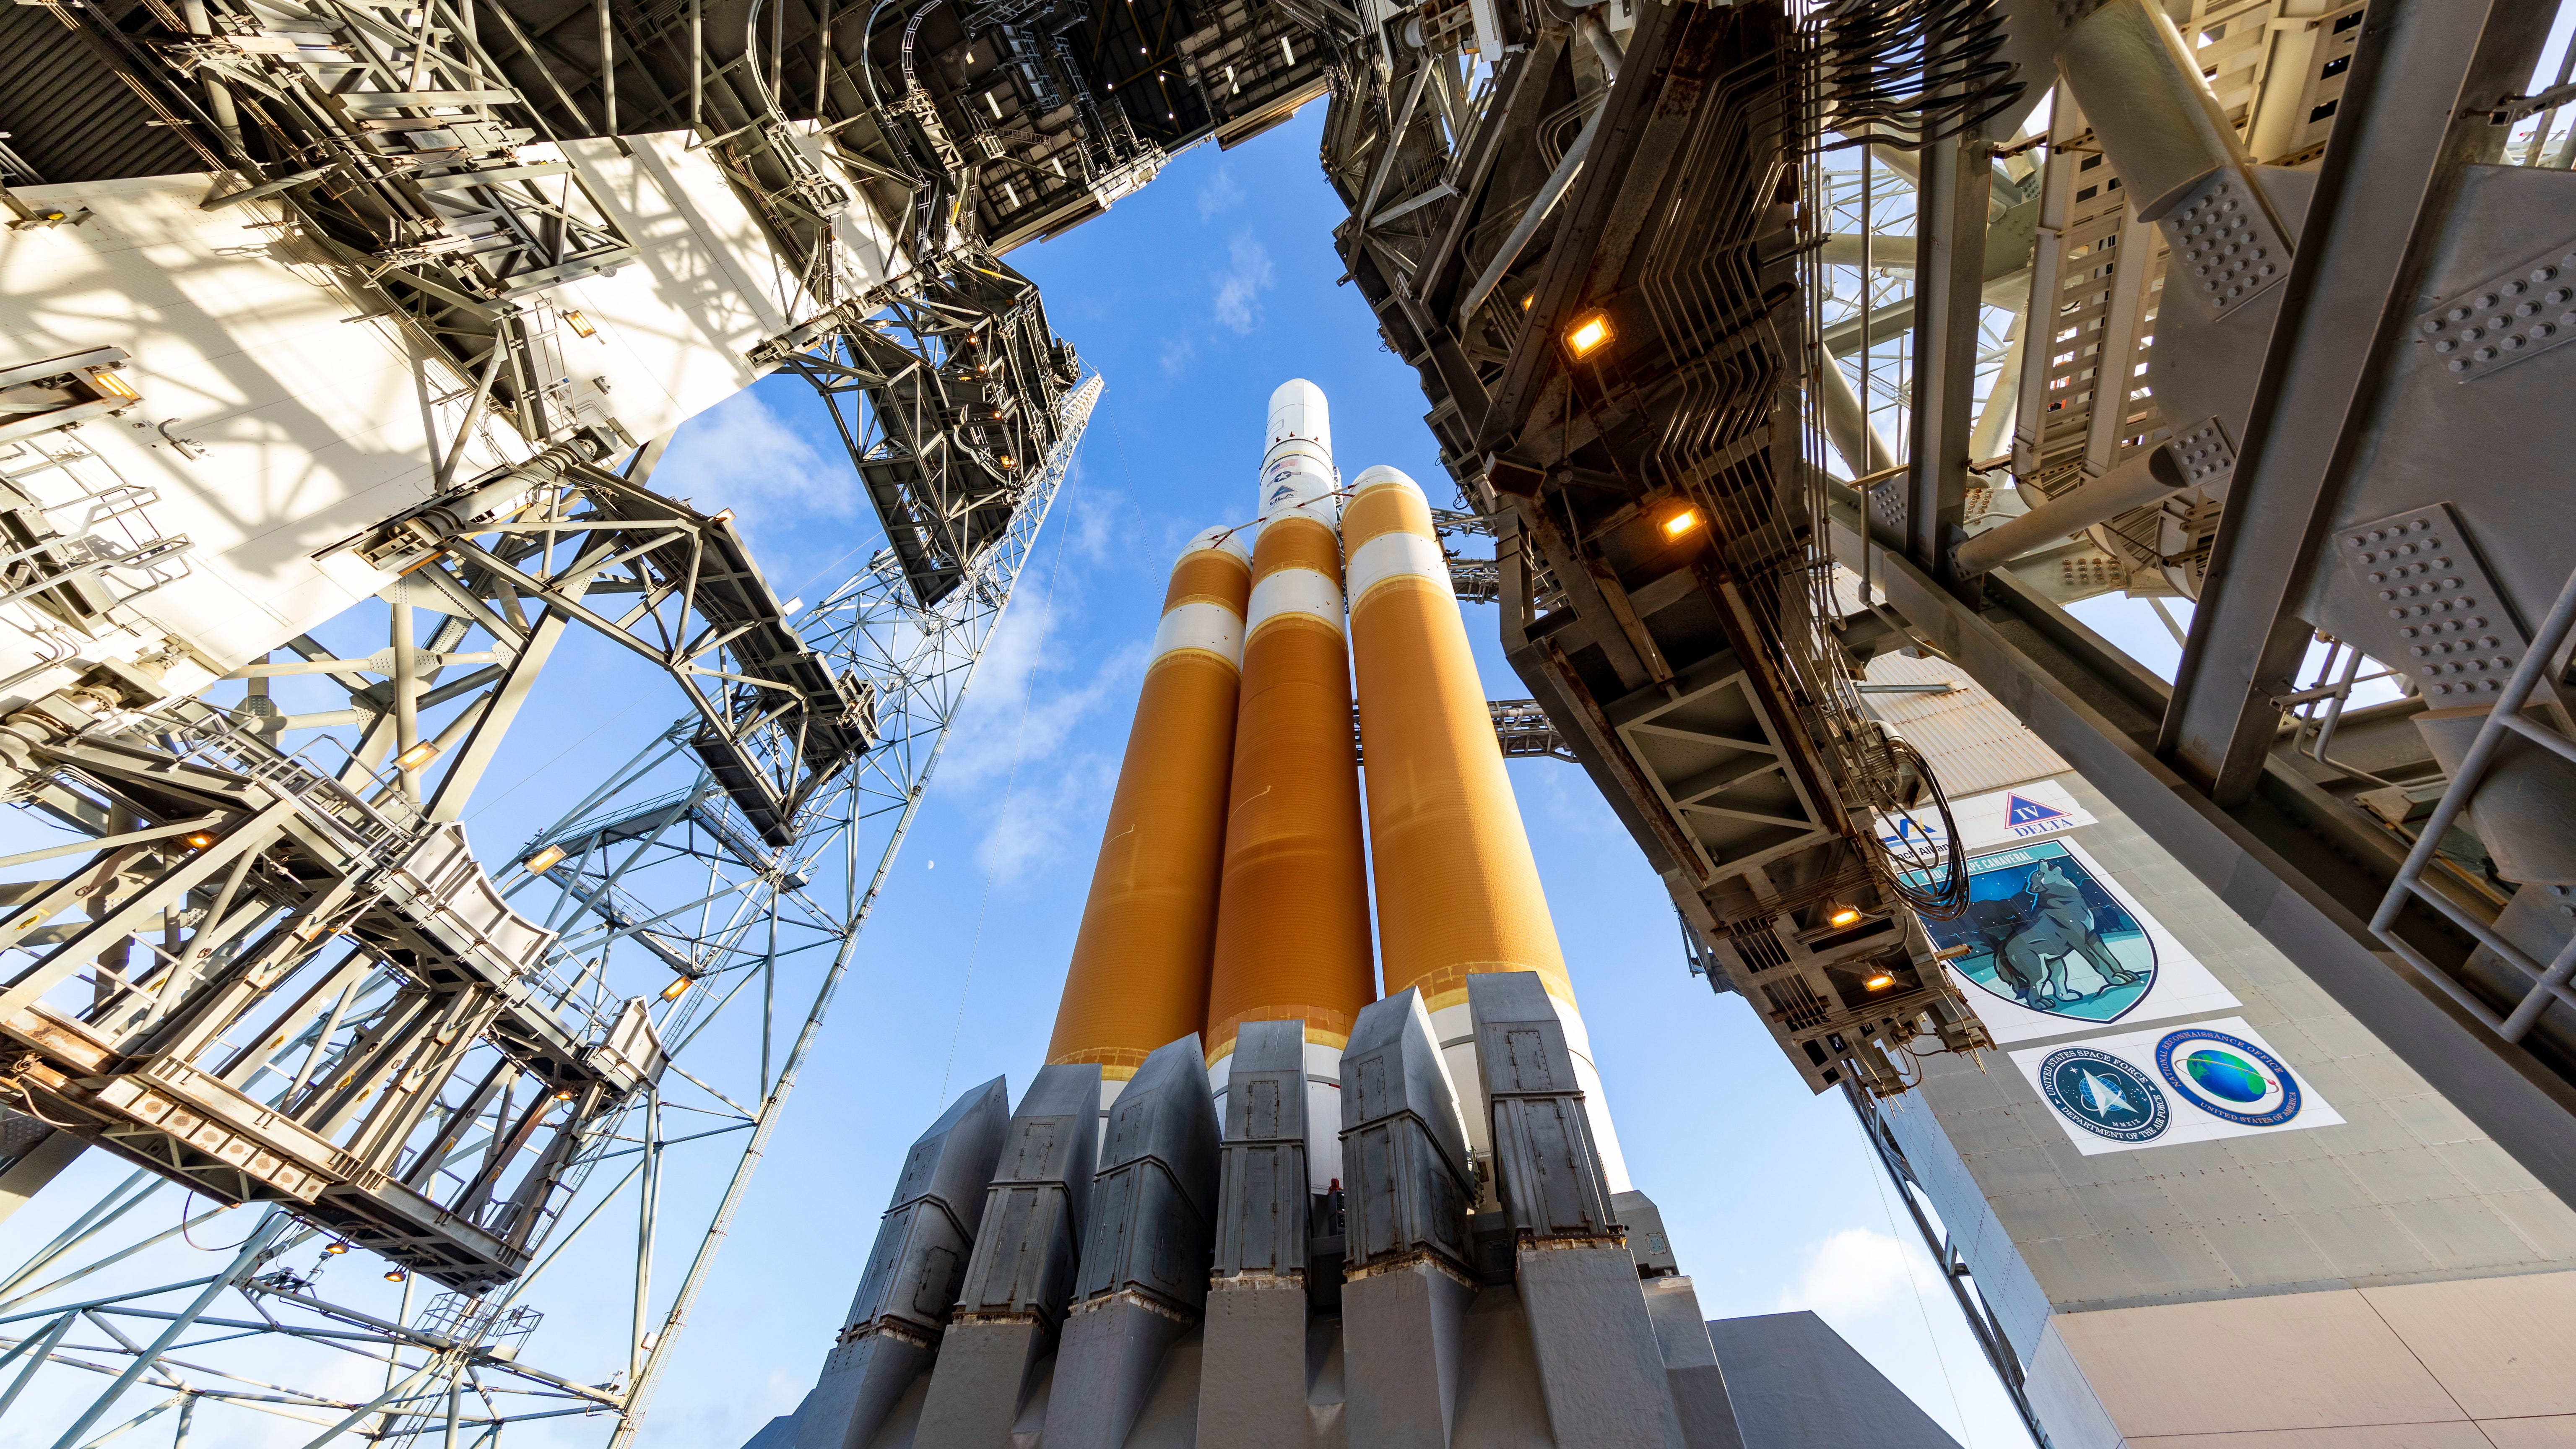 United Launch Alliance's Delta IV Heavy rocket is